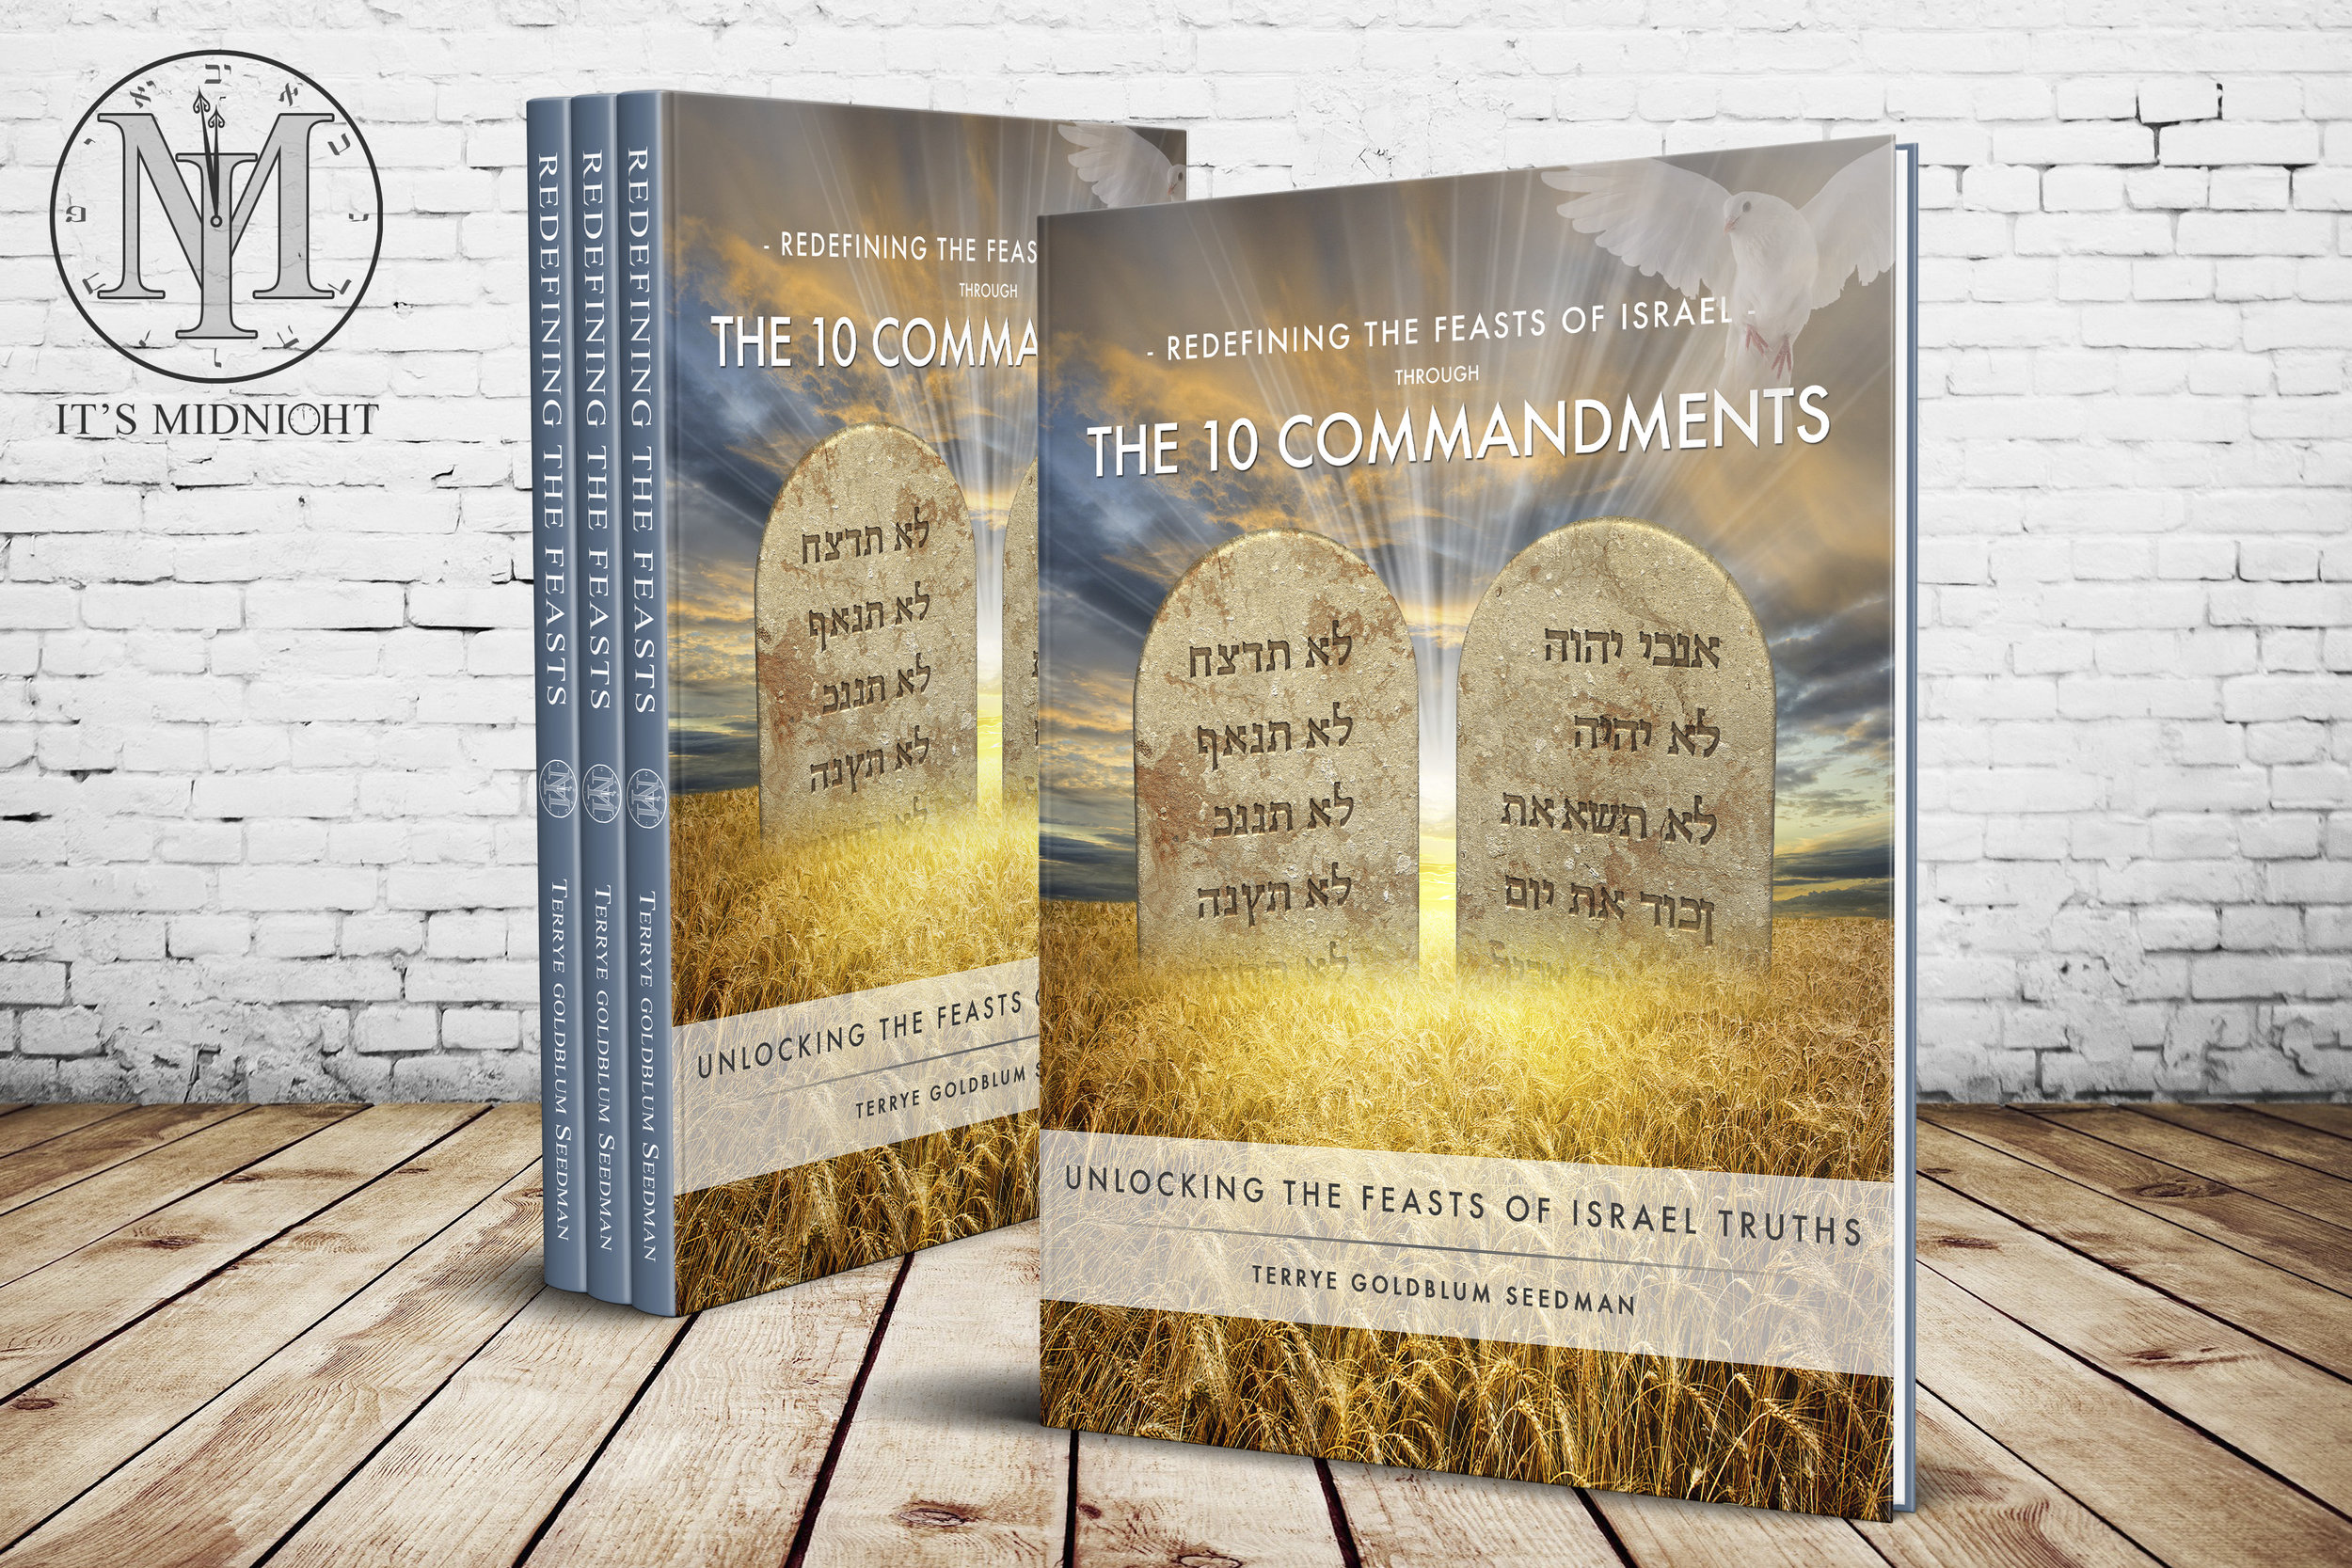 Redefining the Feasts of Israel through the Ten Commandments